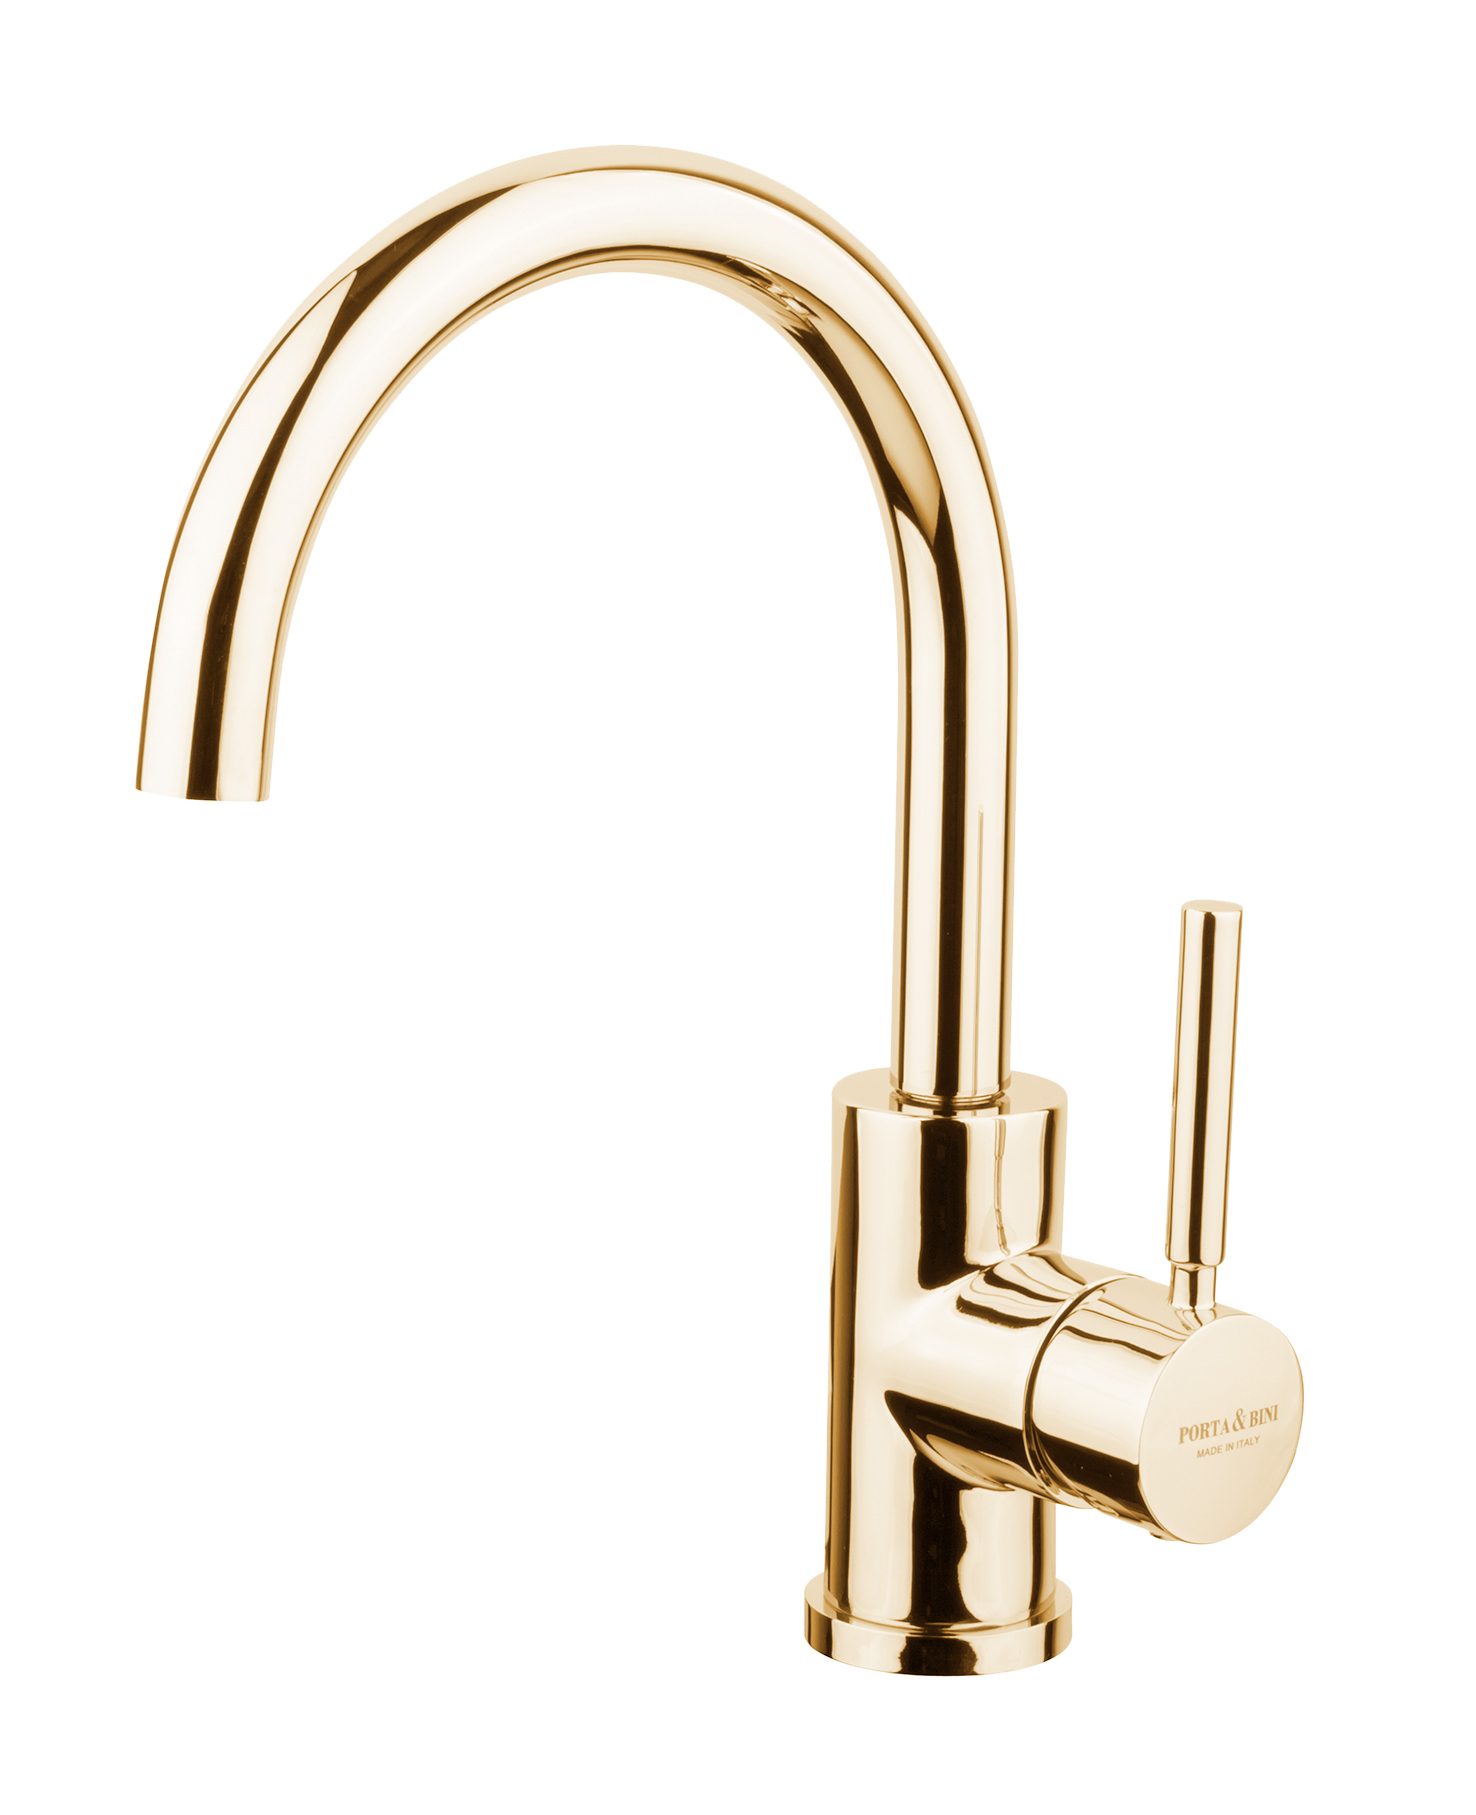 Single lever basin mixer high spout with click-clack outlet, gold